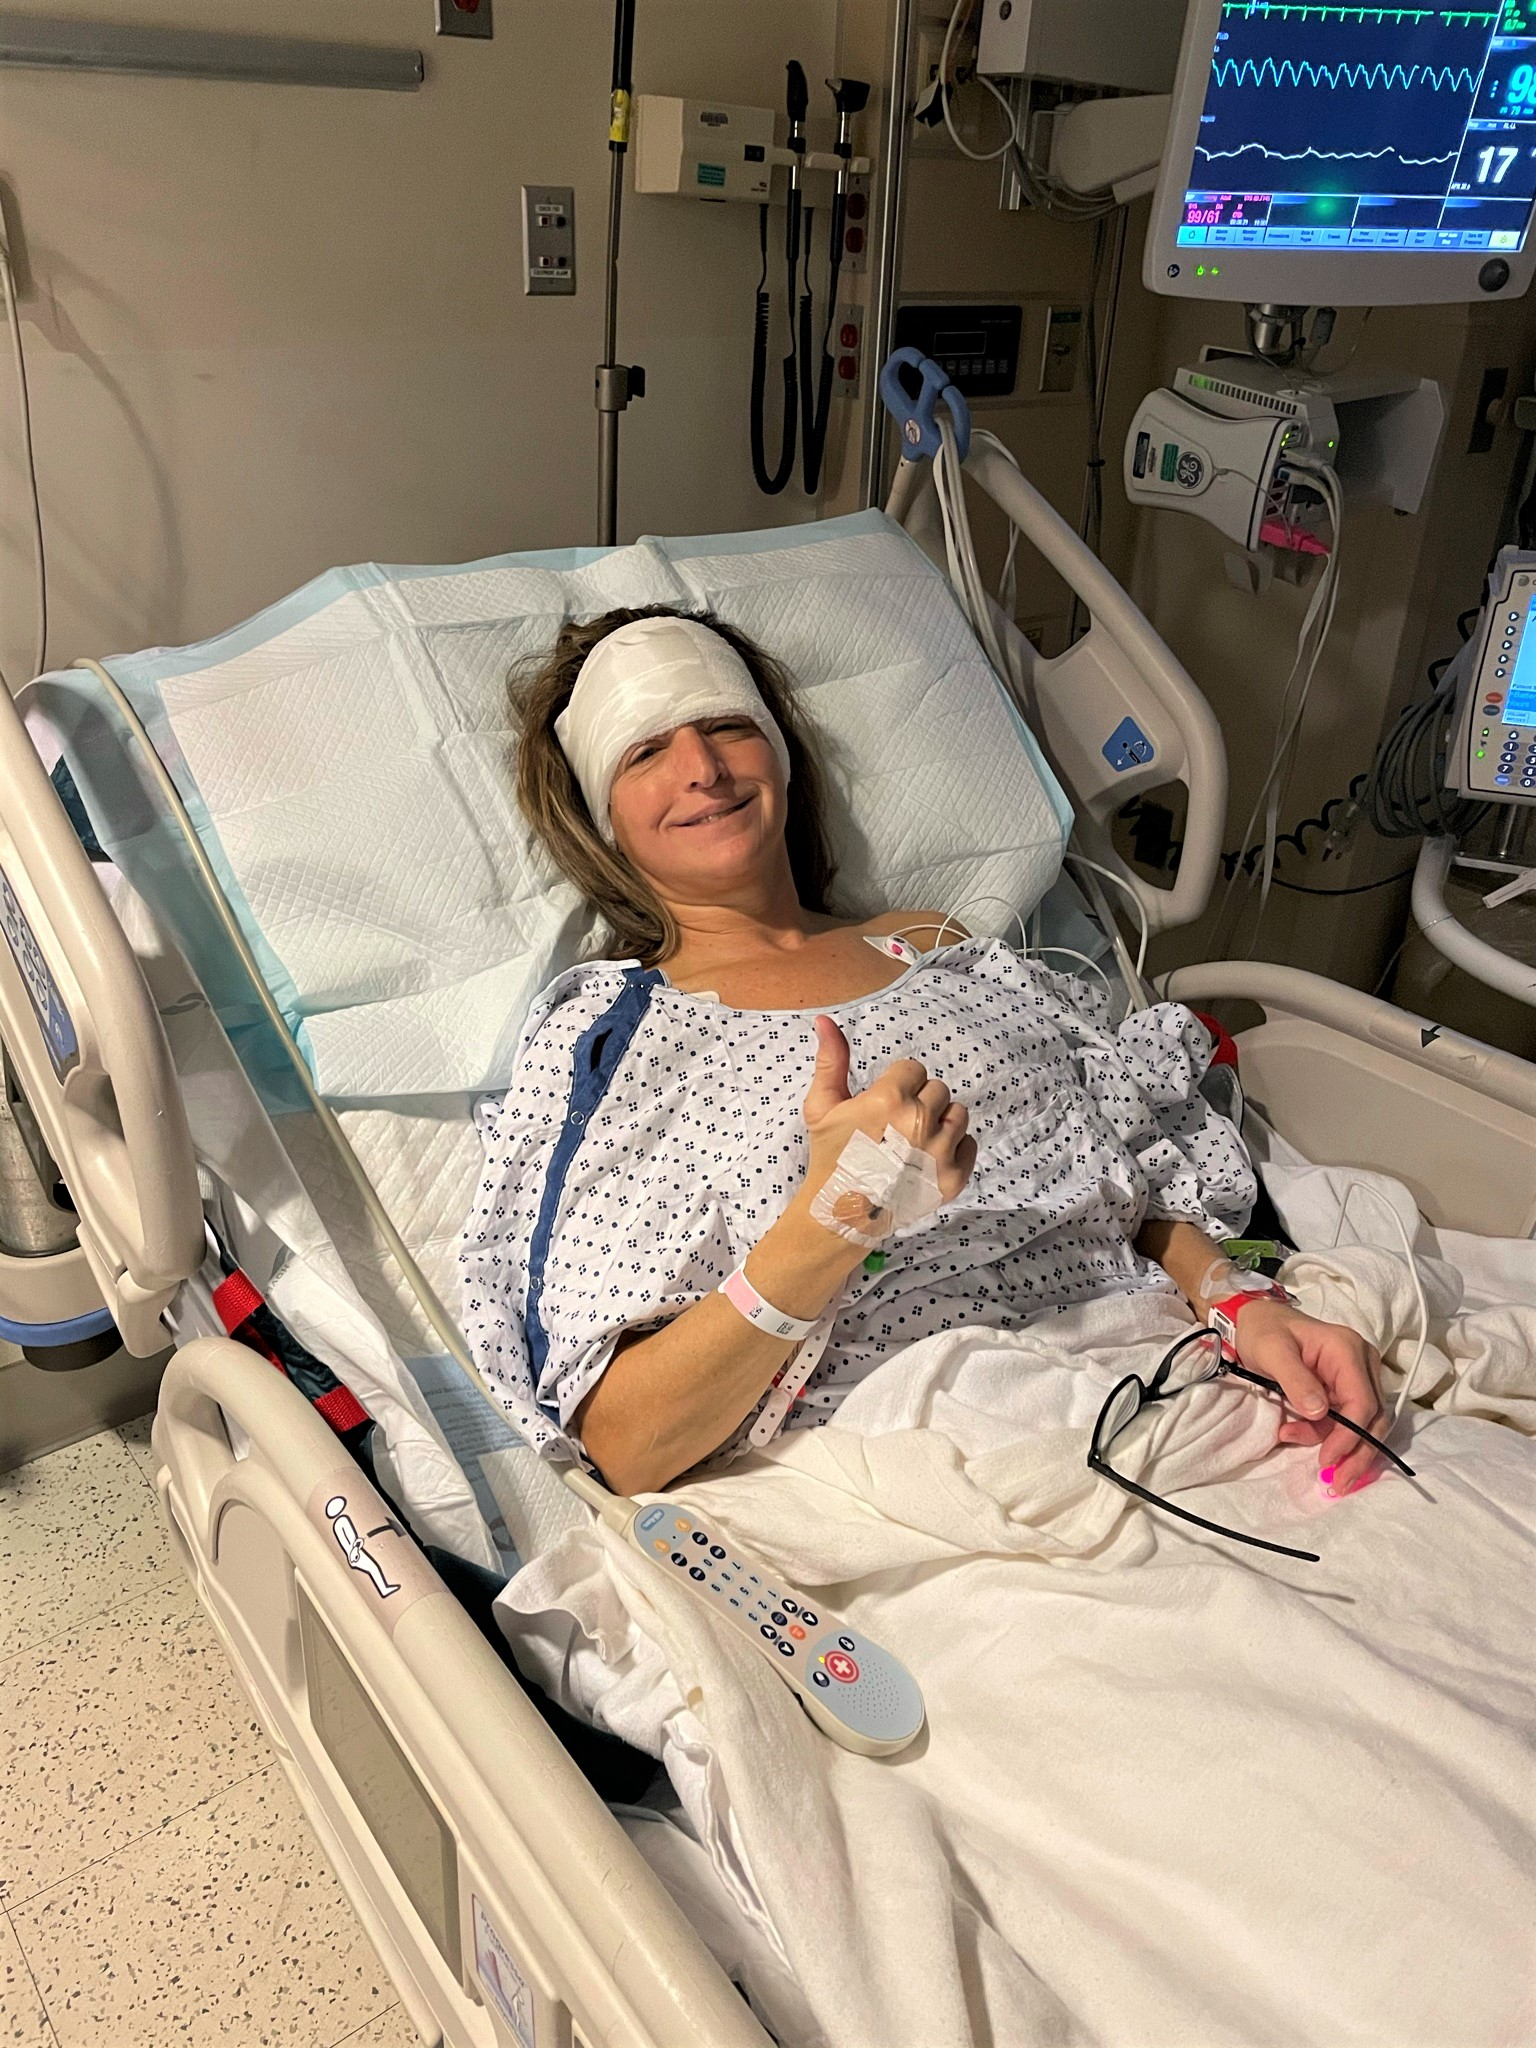 Woman in hospital bed post craniotomy